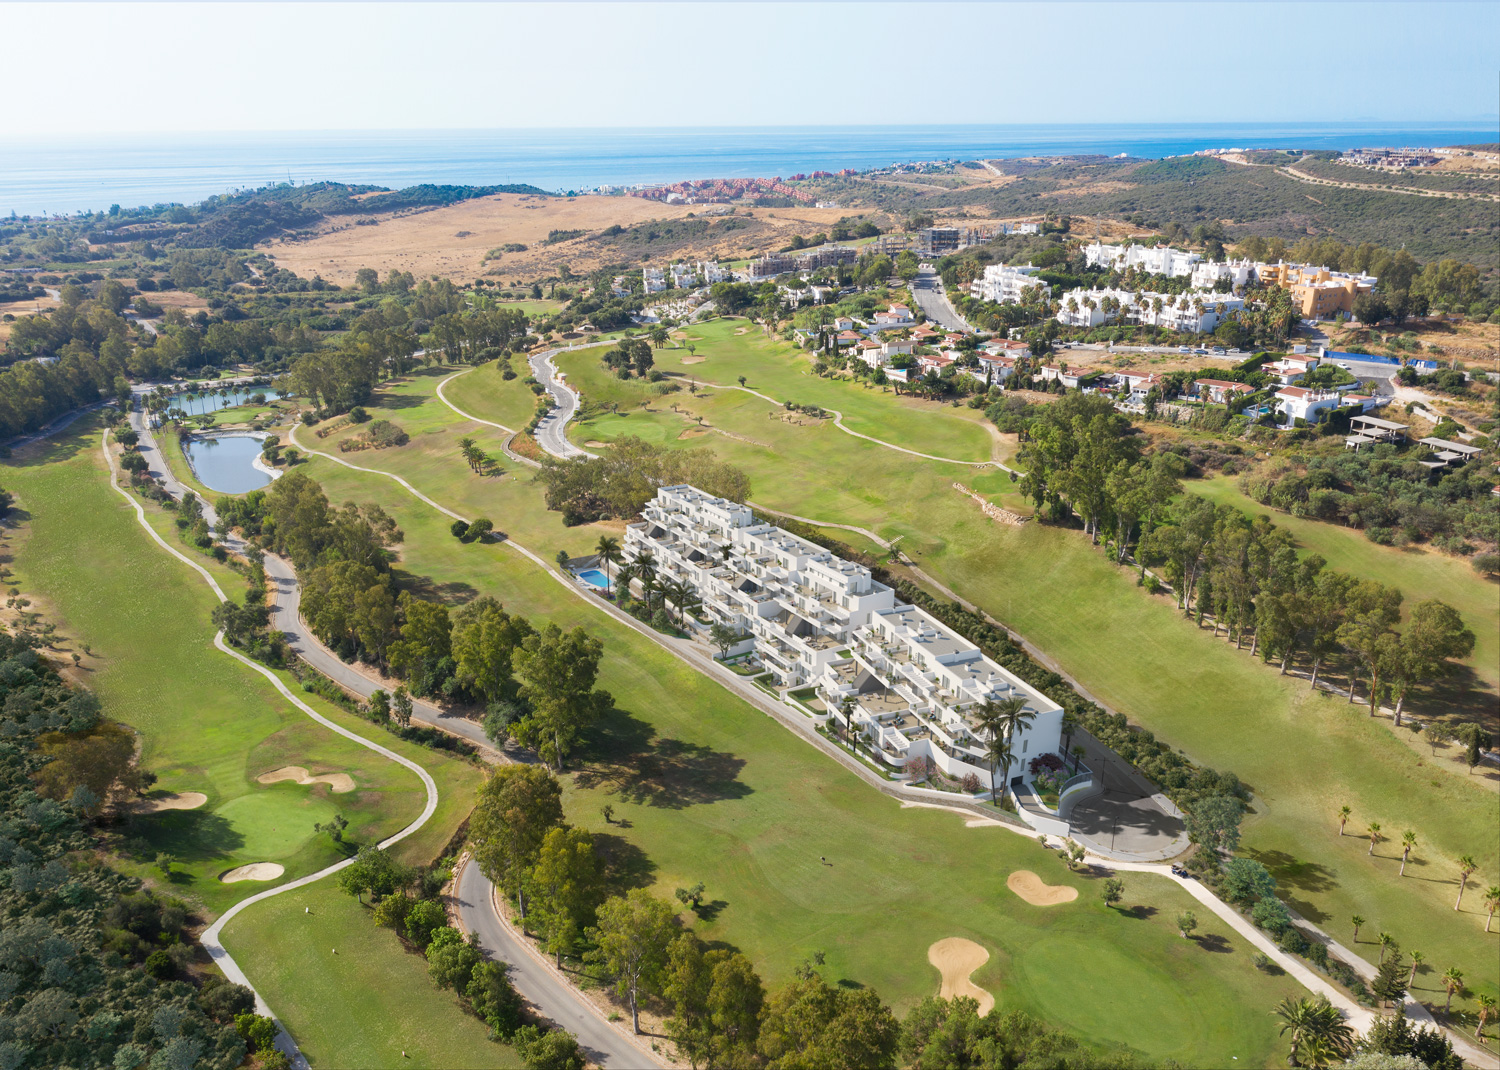 New Golf Residence – Apartments with views over golf courses in Estepona